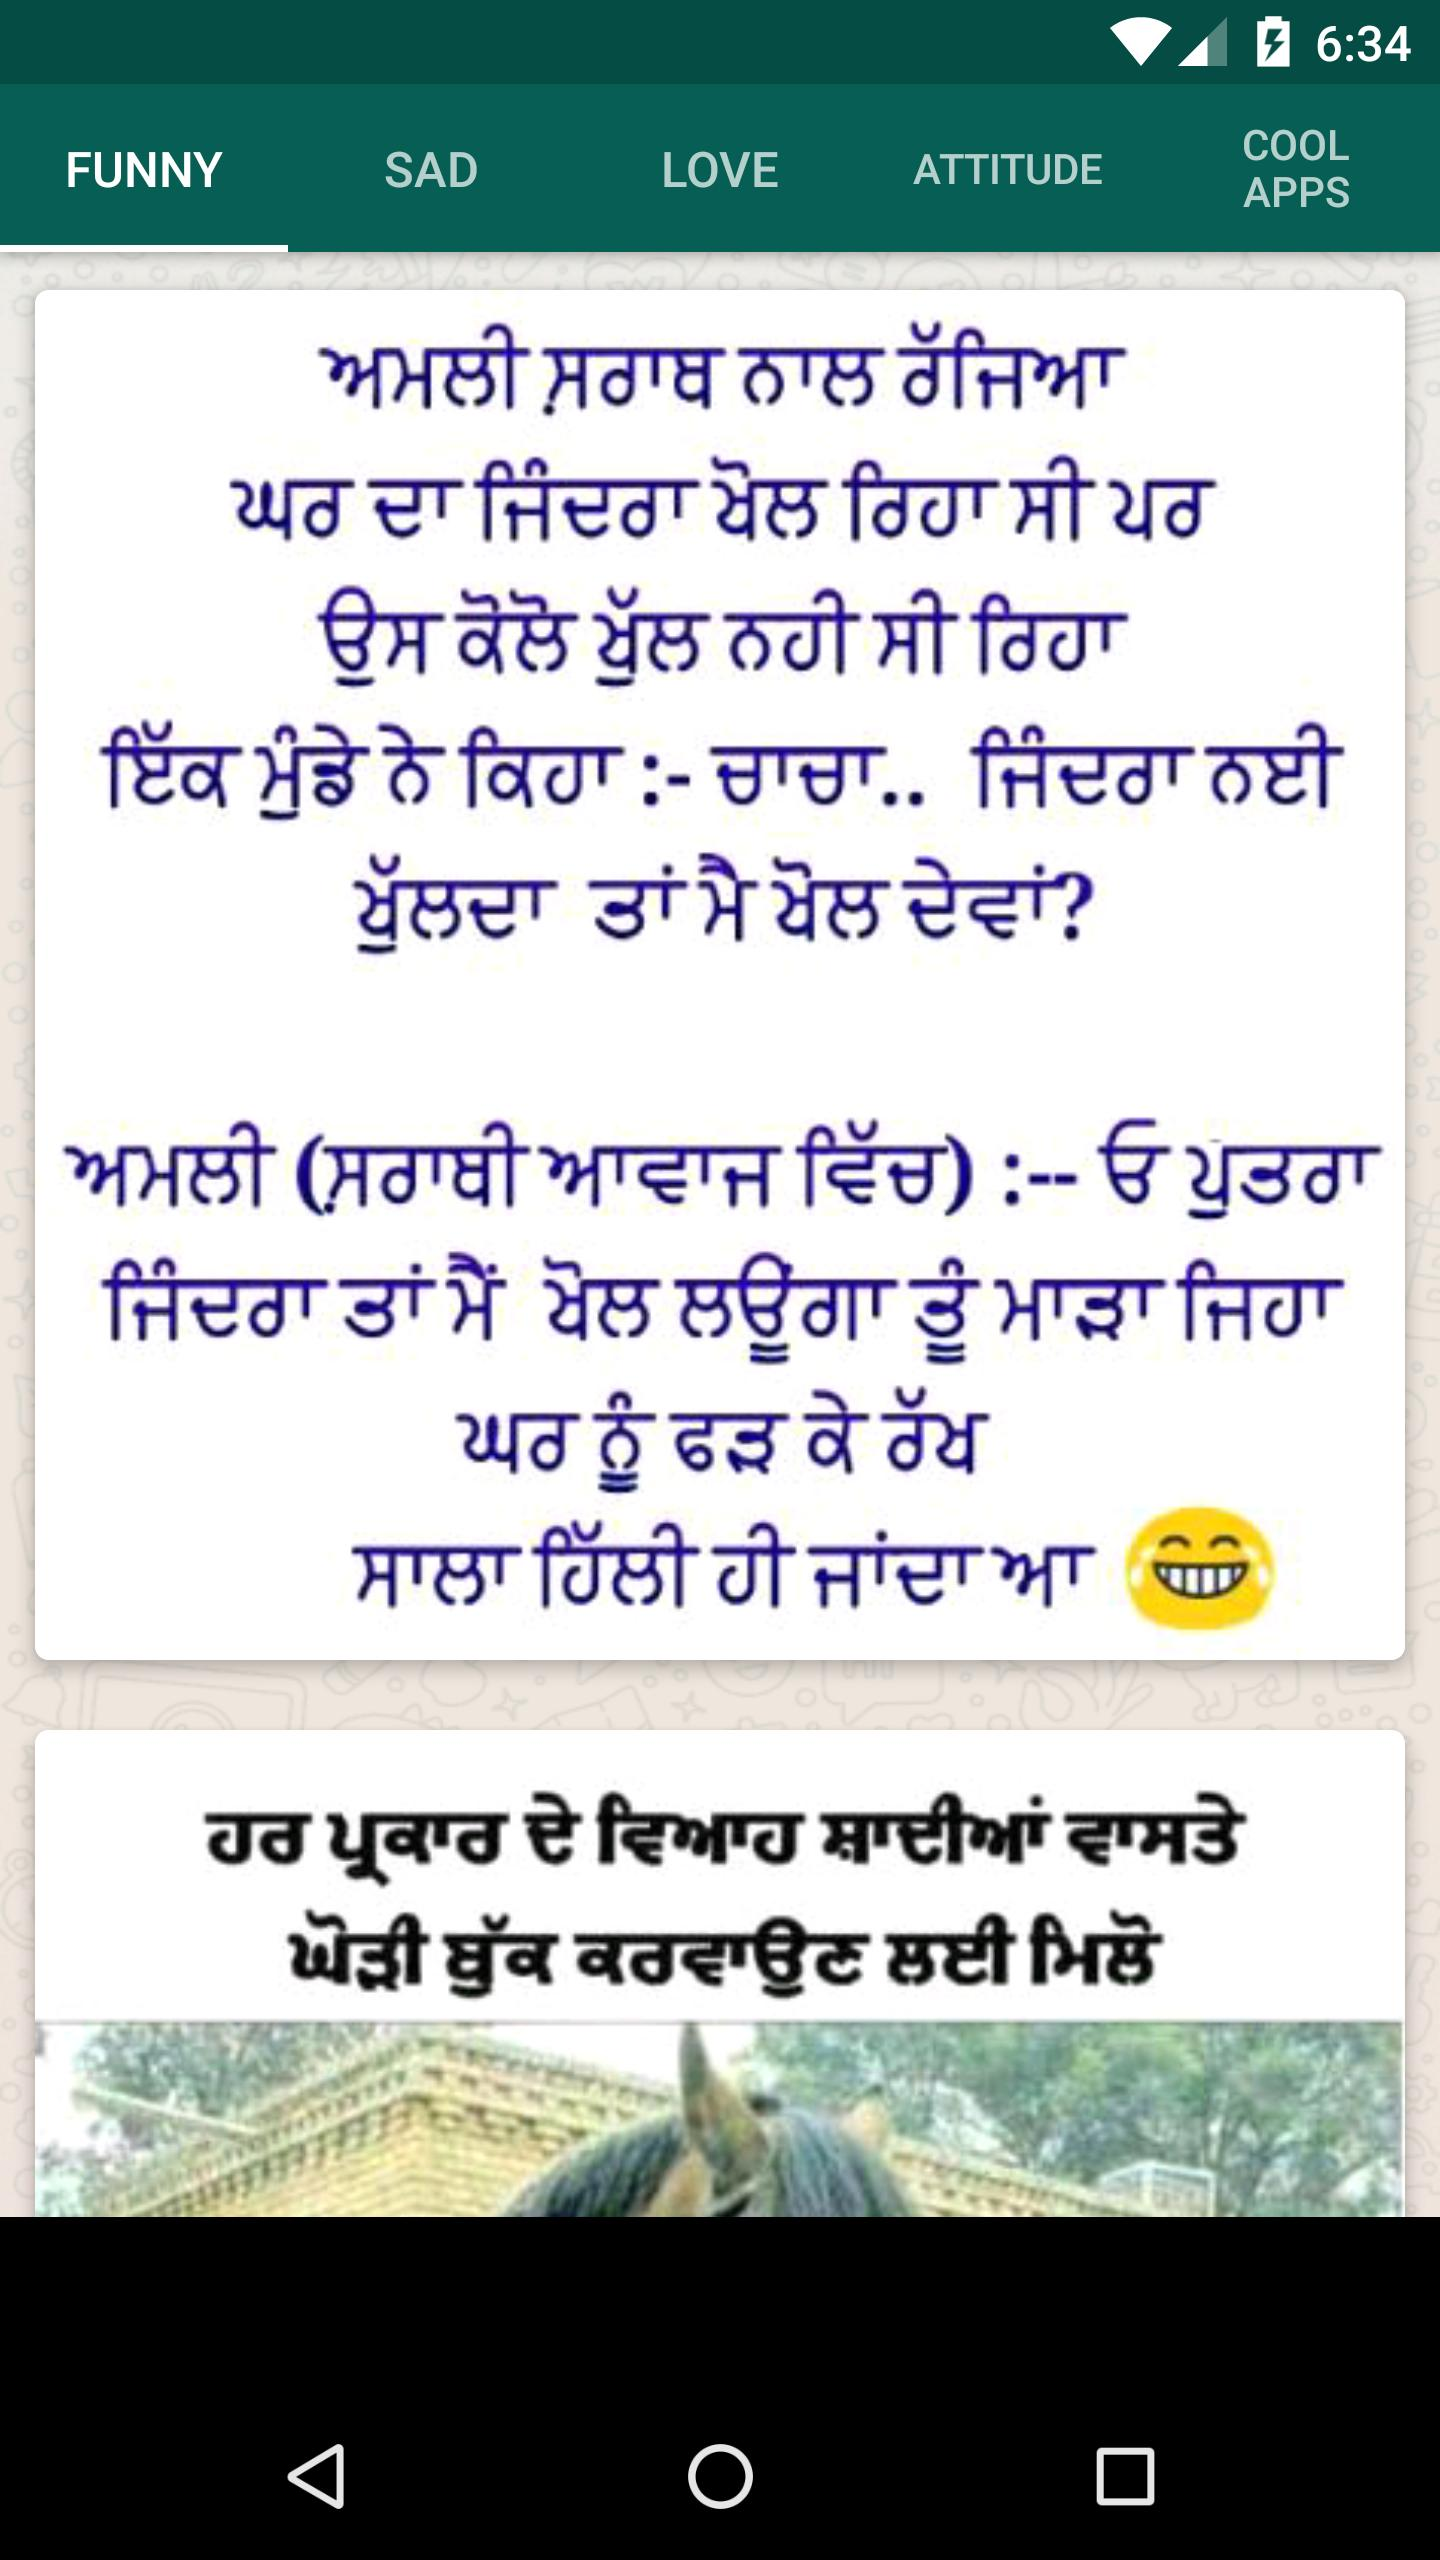 Punjabi status for whatsapp for Android - APK Download